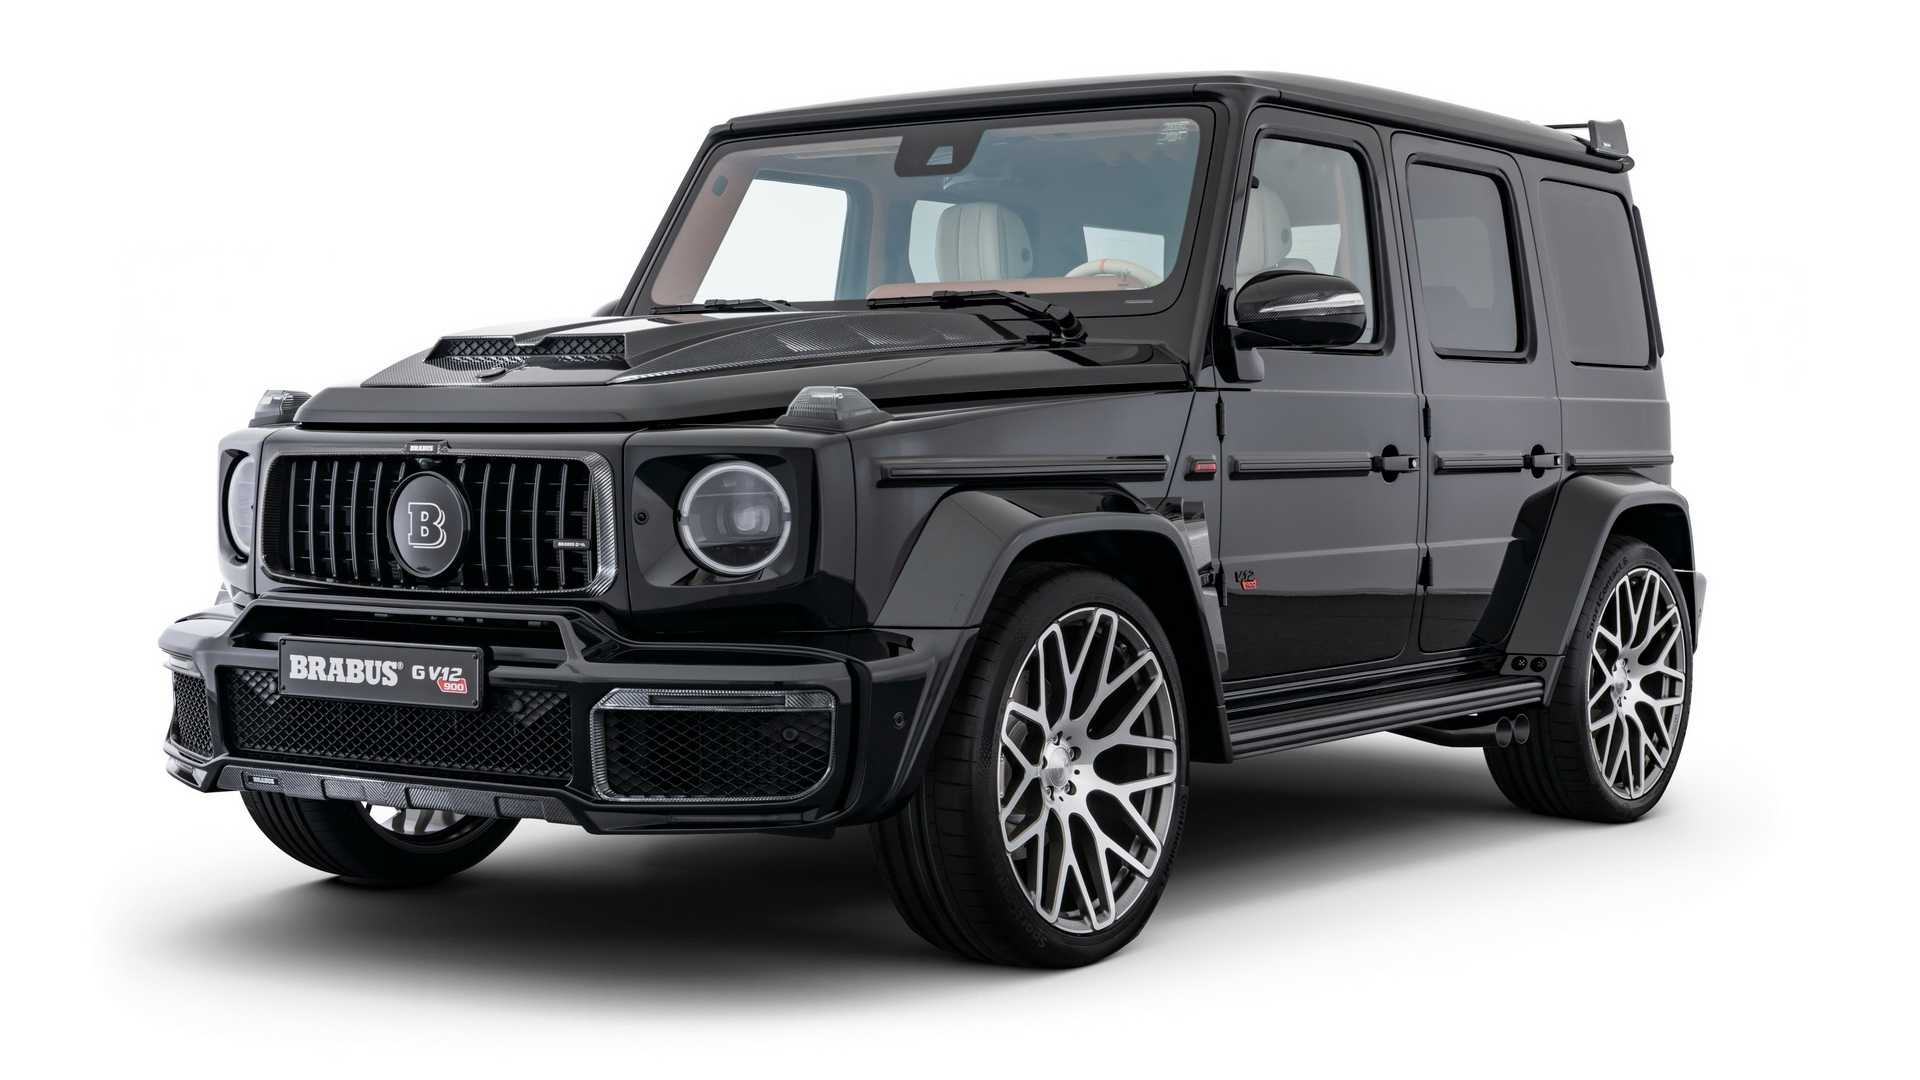 Mercedes G-Class gets V12 engine from Brabus with 888 bhp